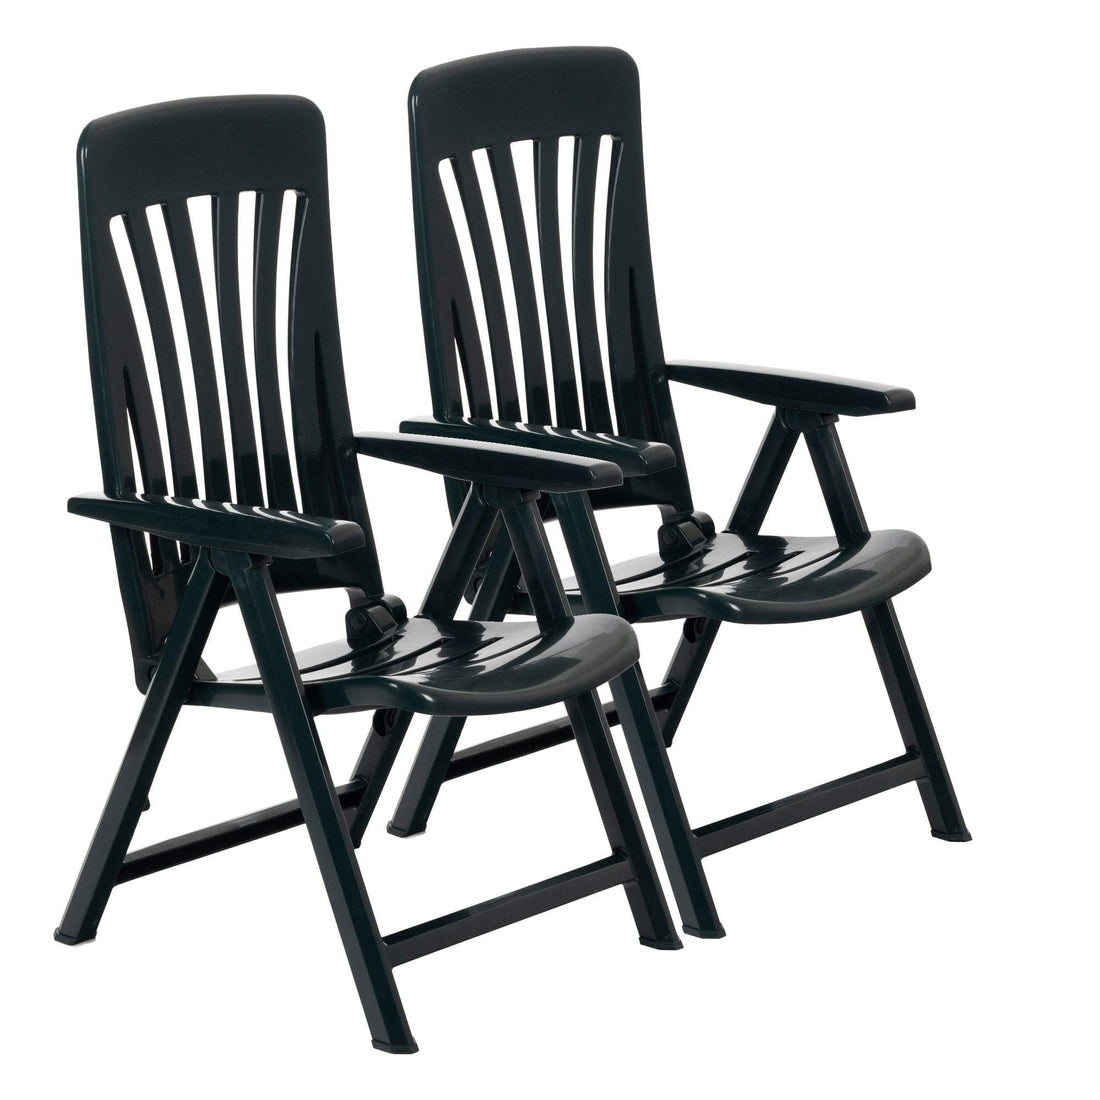 Resol Blanes Reclining Sun Lounger Chairs - Green - Pack of 2